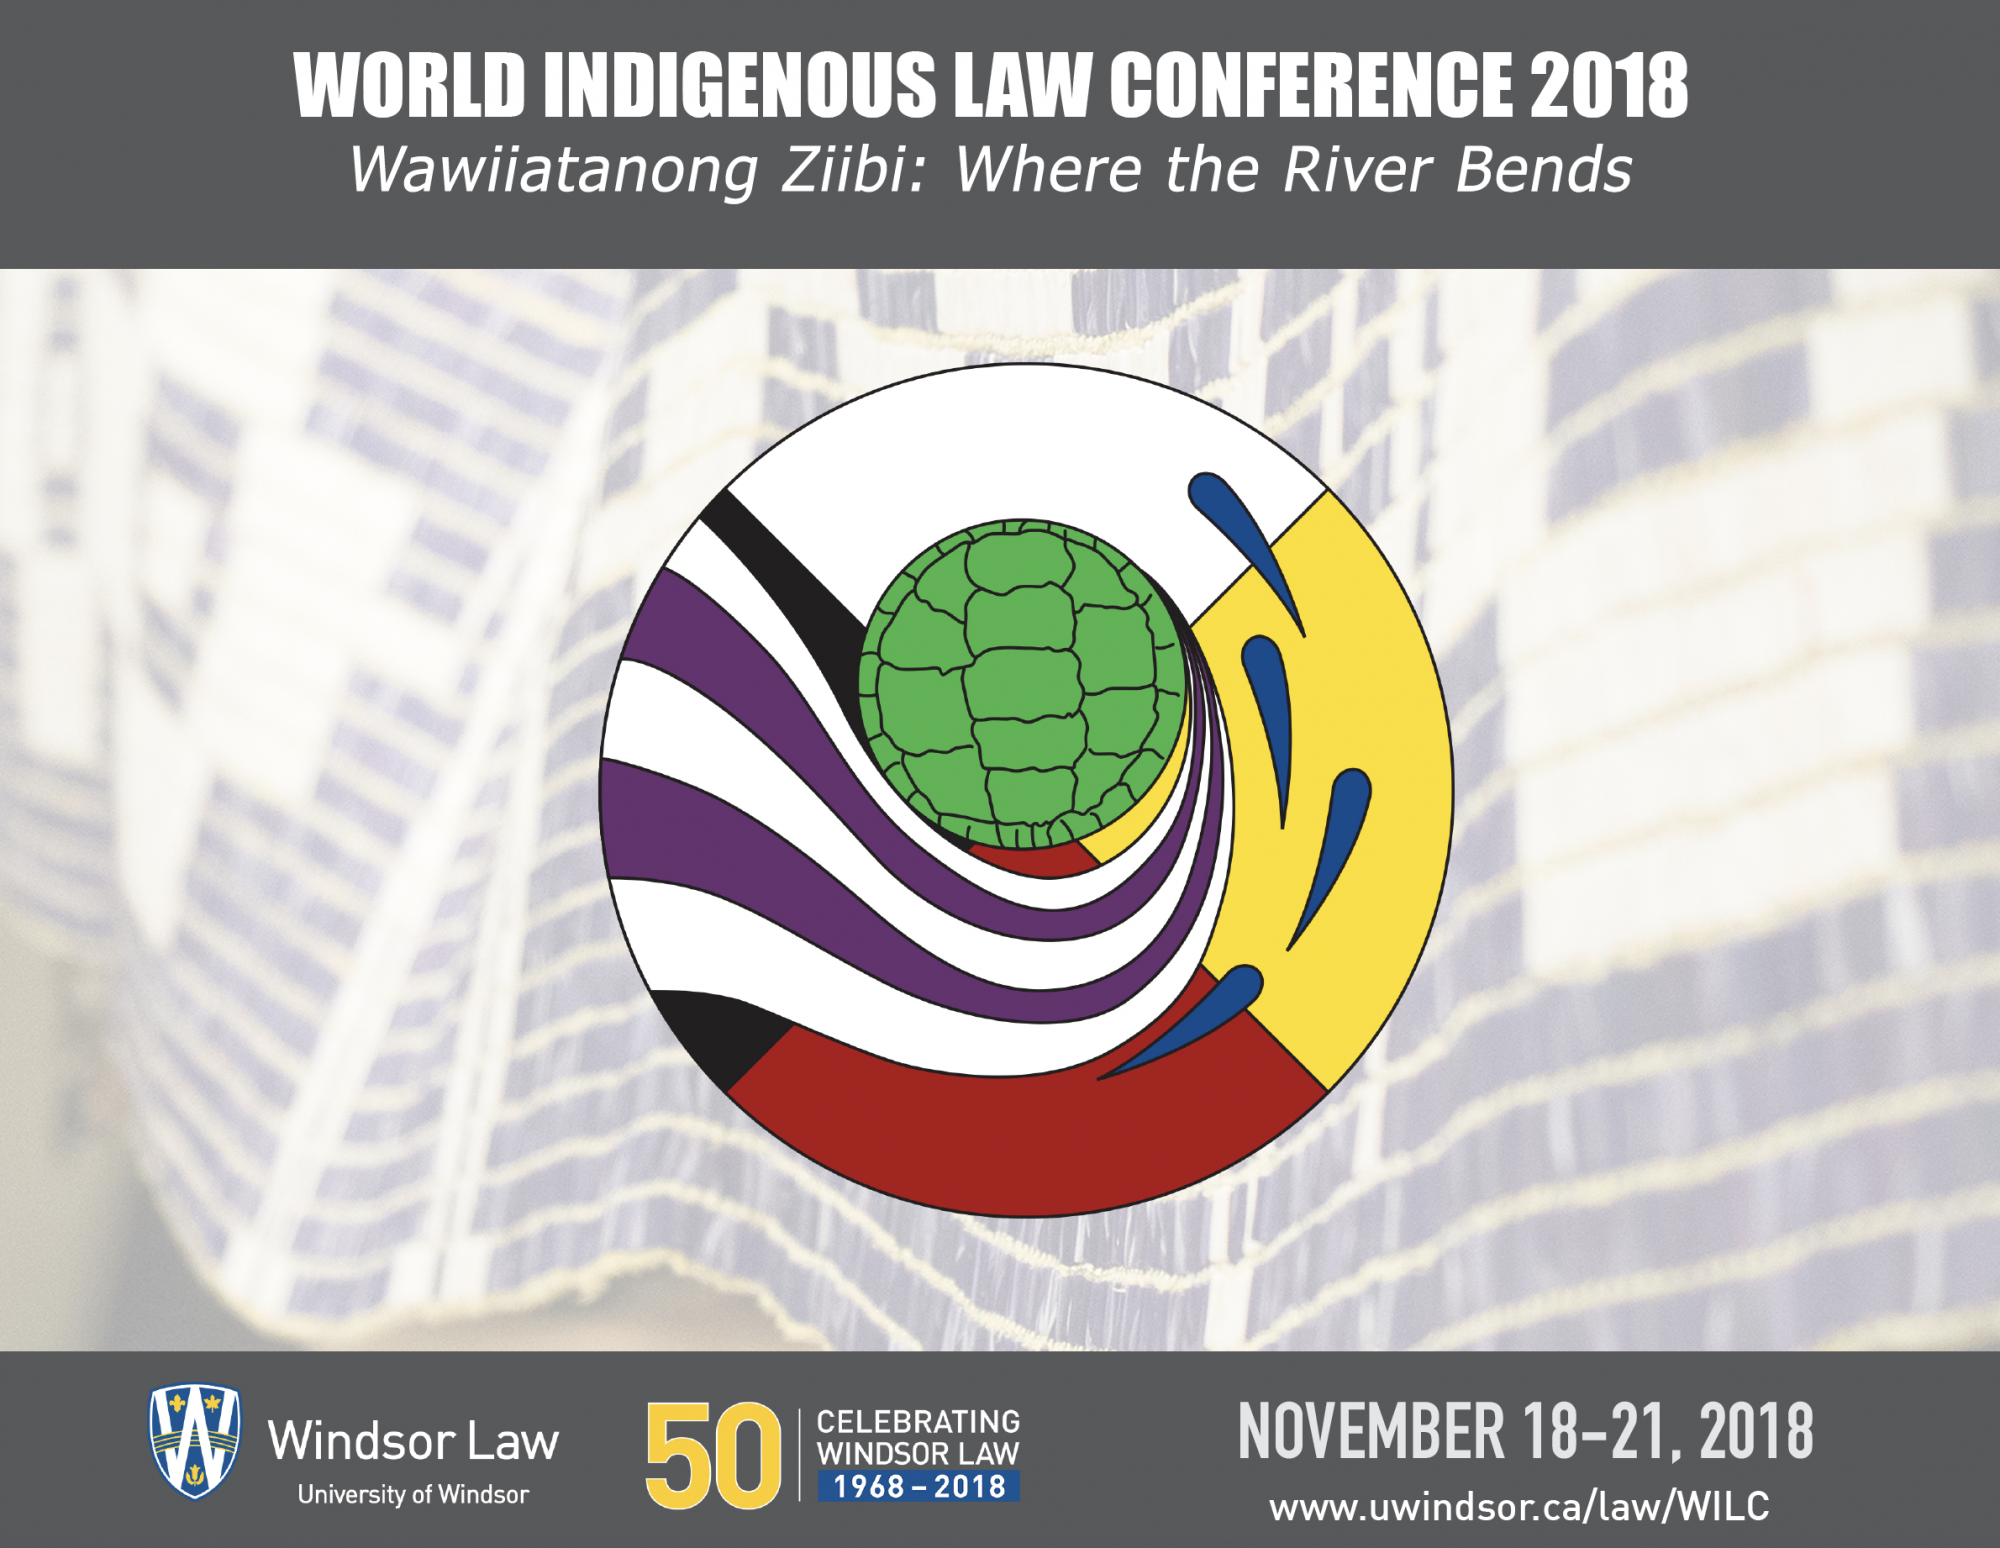 World Indigenous Law Conference Program